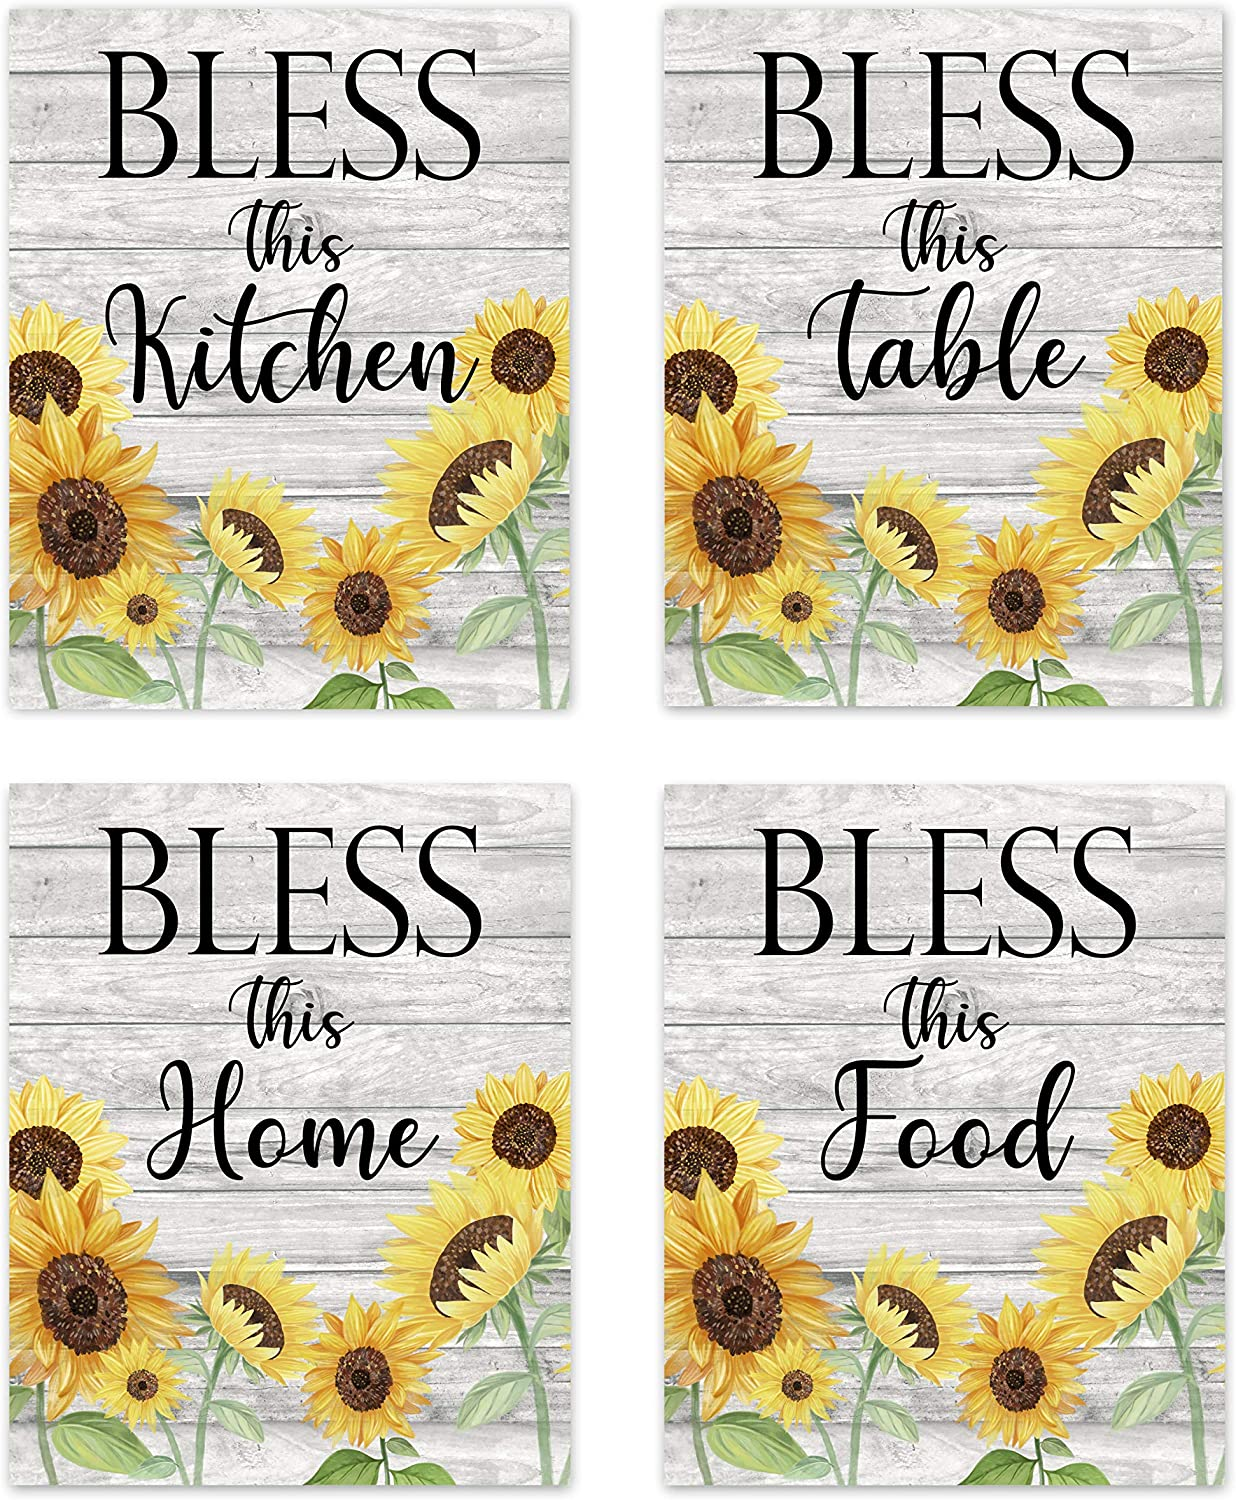 "Bless This Kitchen Home Table Food - Rustic Vintage Farmhouse Country Boho Wood Grain Inspirational Quotes Sayings Wall Art for Kitchen Dining Room Bar Decor Modern Signs Pictures Posters Prints Decorations Floral Flower Sunflower Unframed 8""x10"""